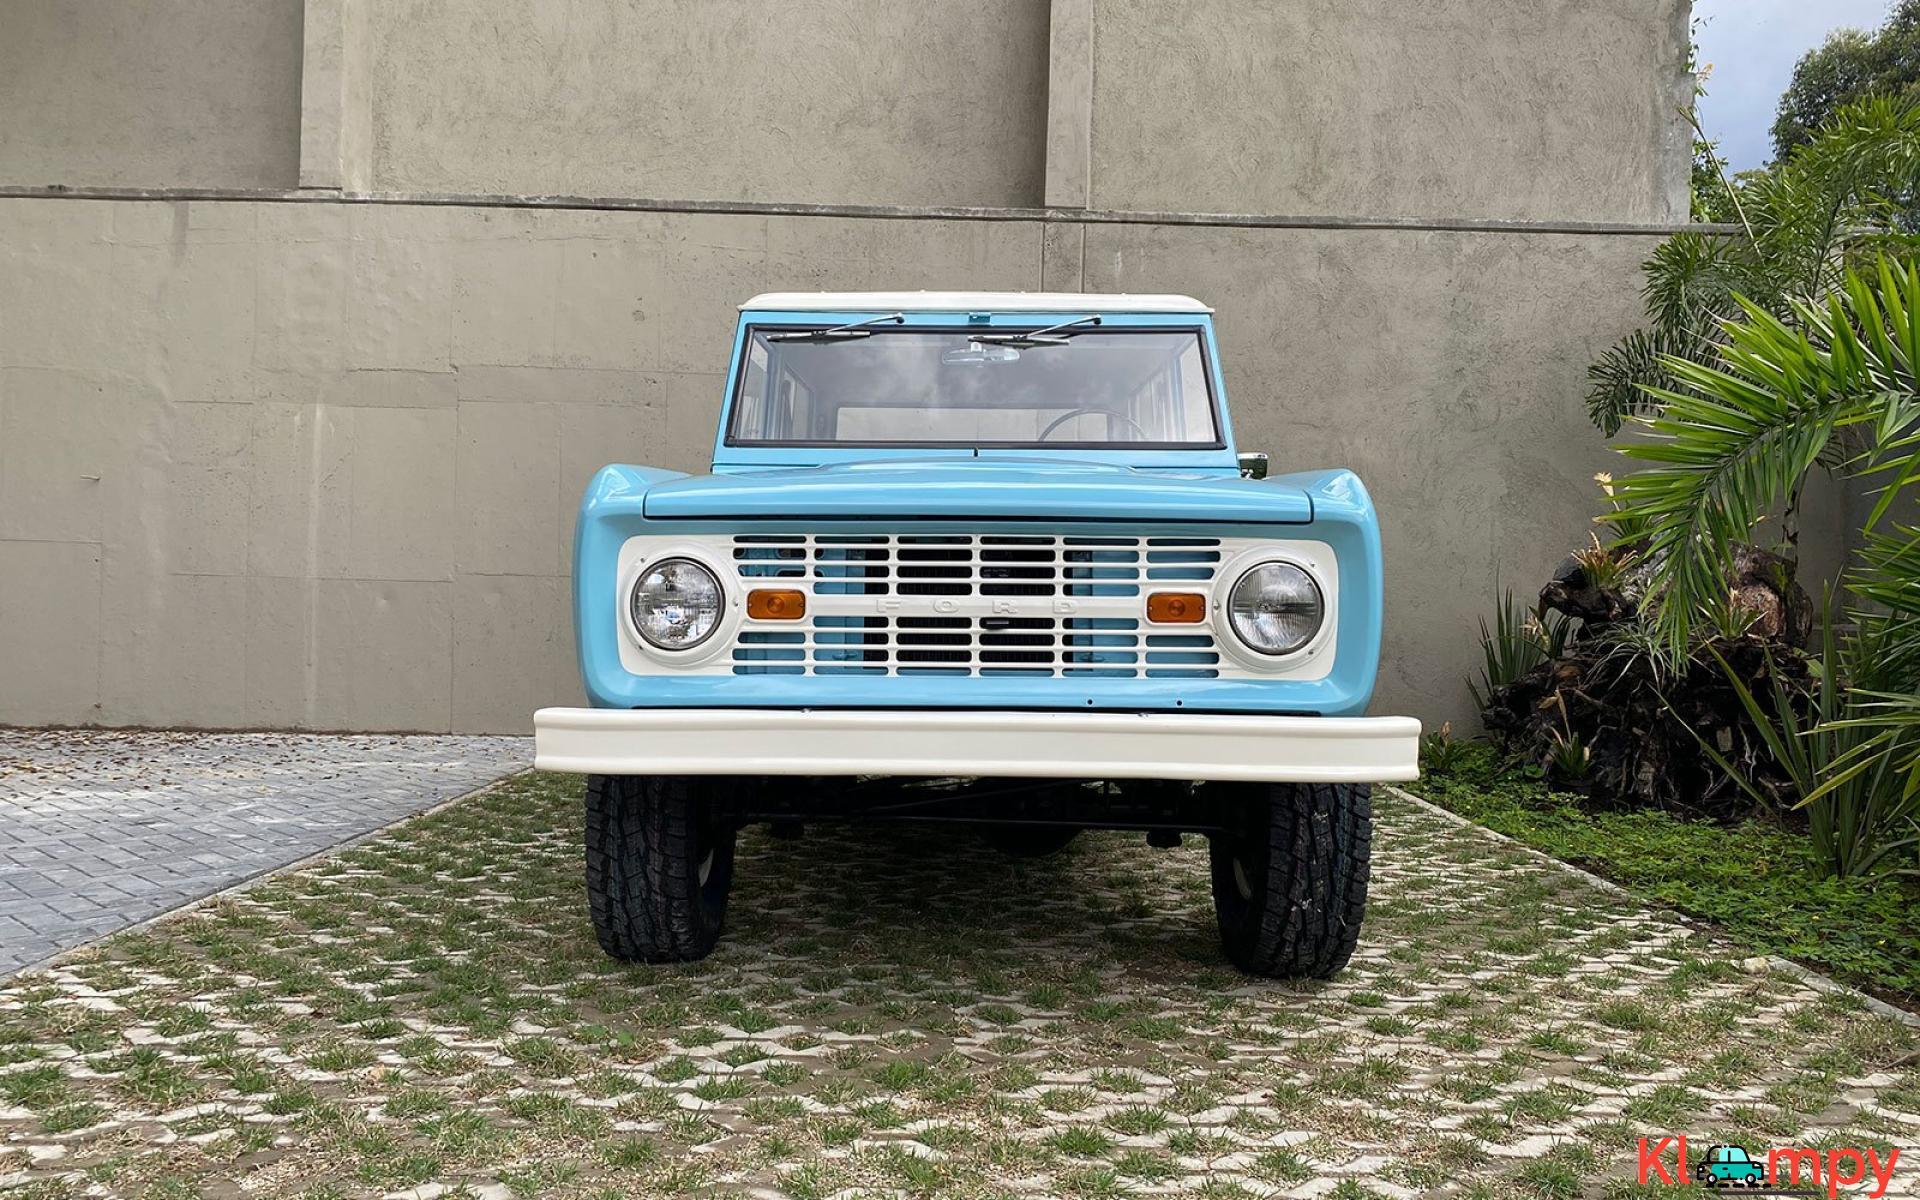 1967 Ford Bronco 170 Inline-Six - 3/21